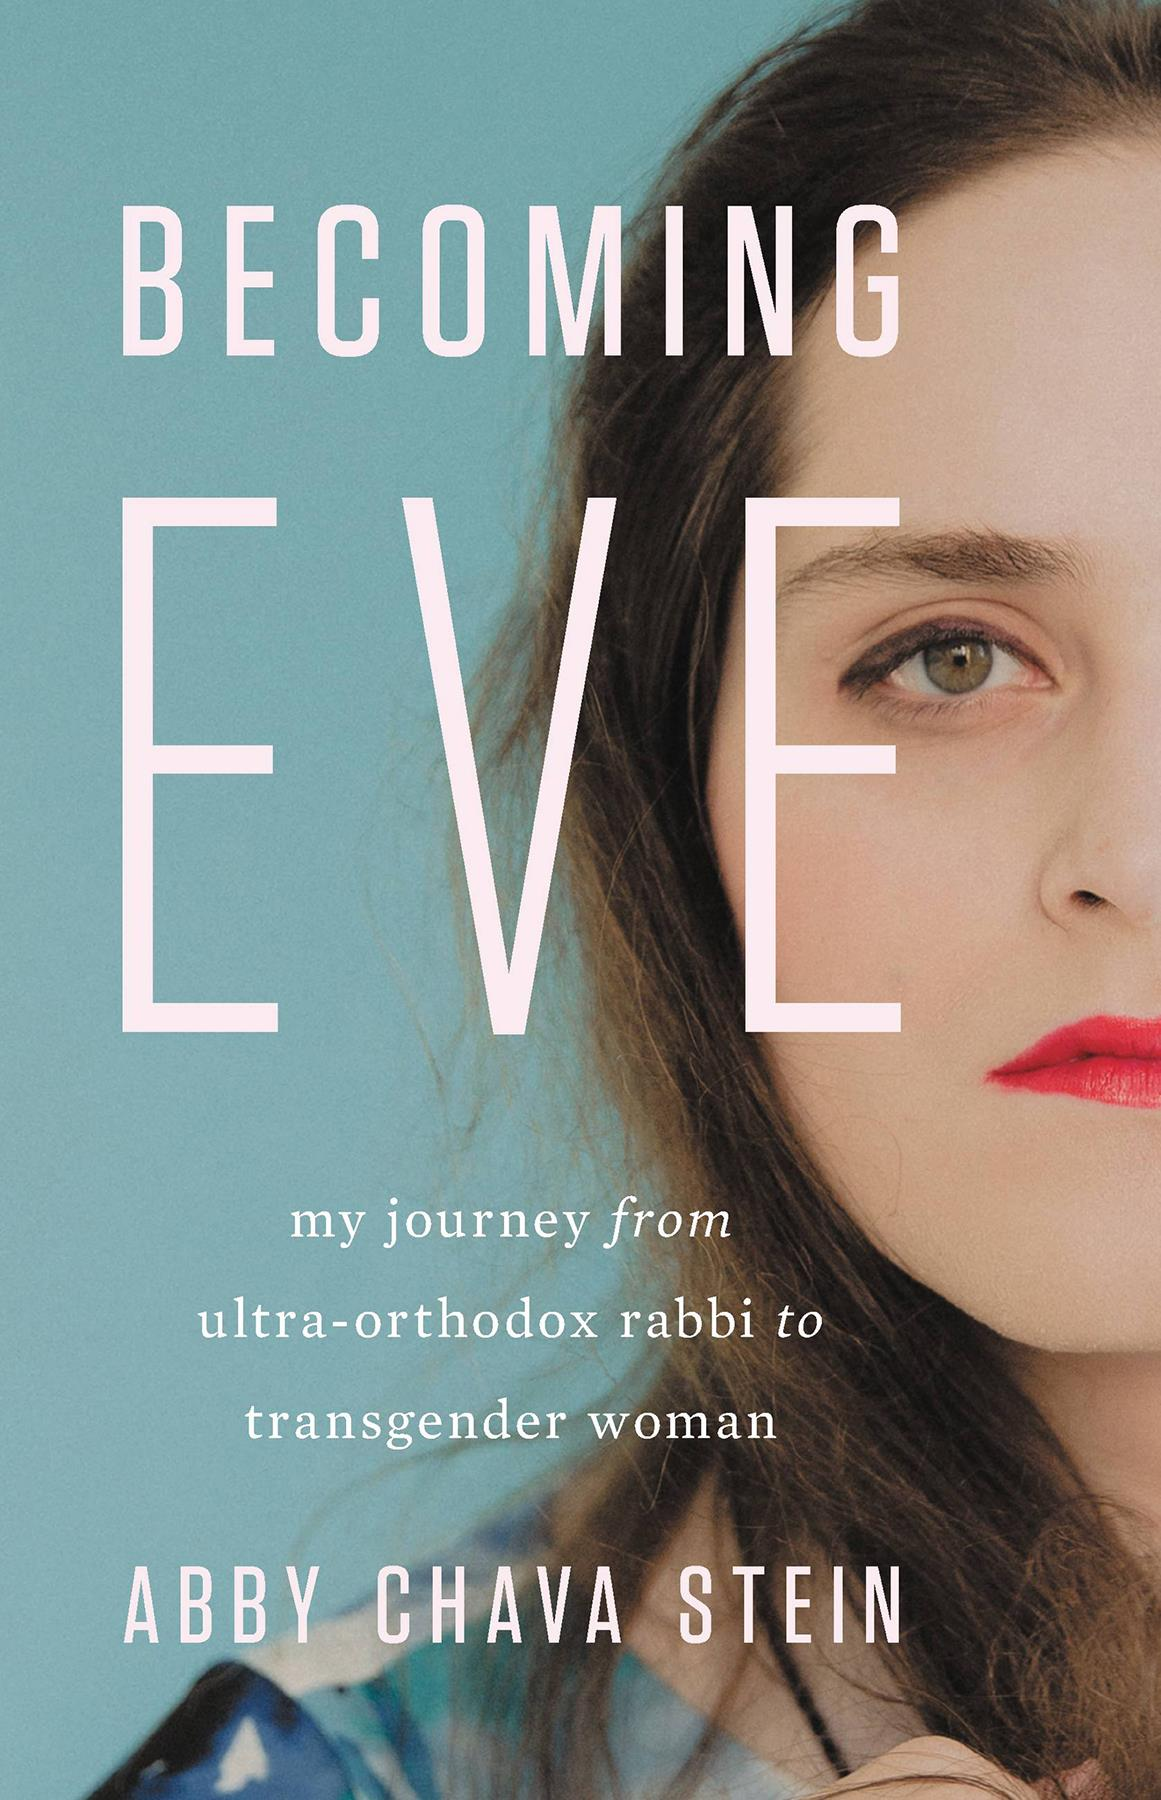 Becoming Eve: My Journey from Ultra-Orthodox Rabbi to Transgender Woman PDF